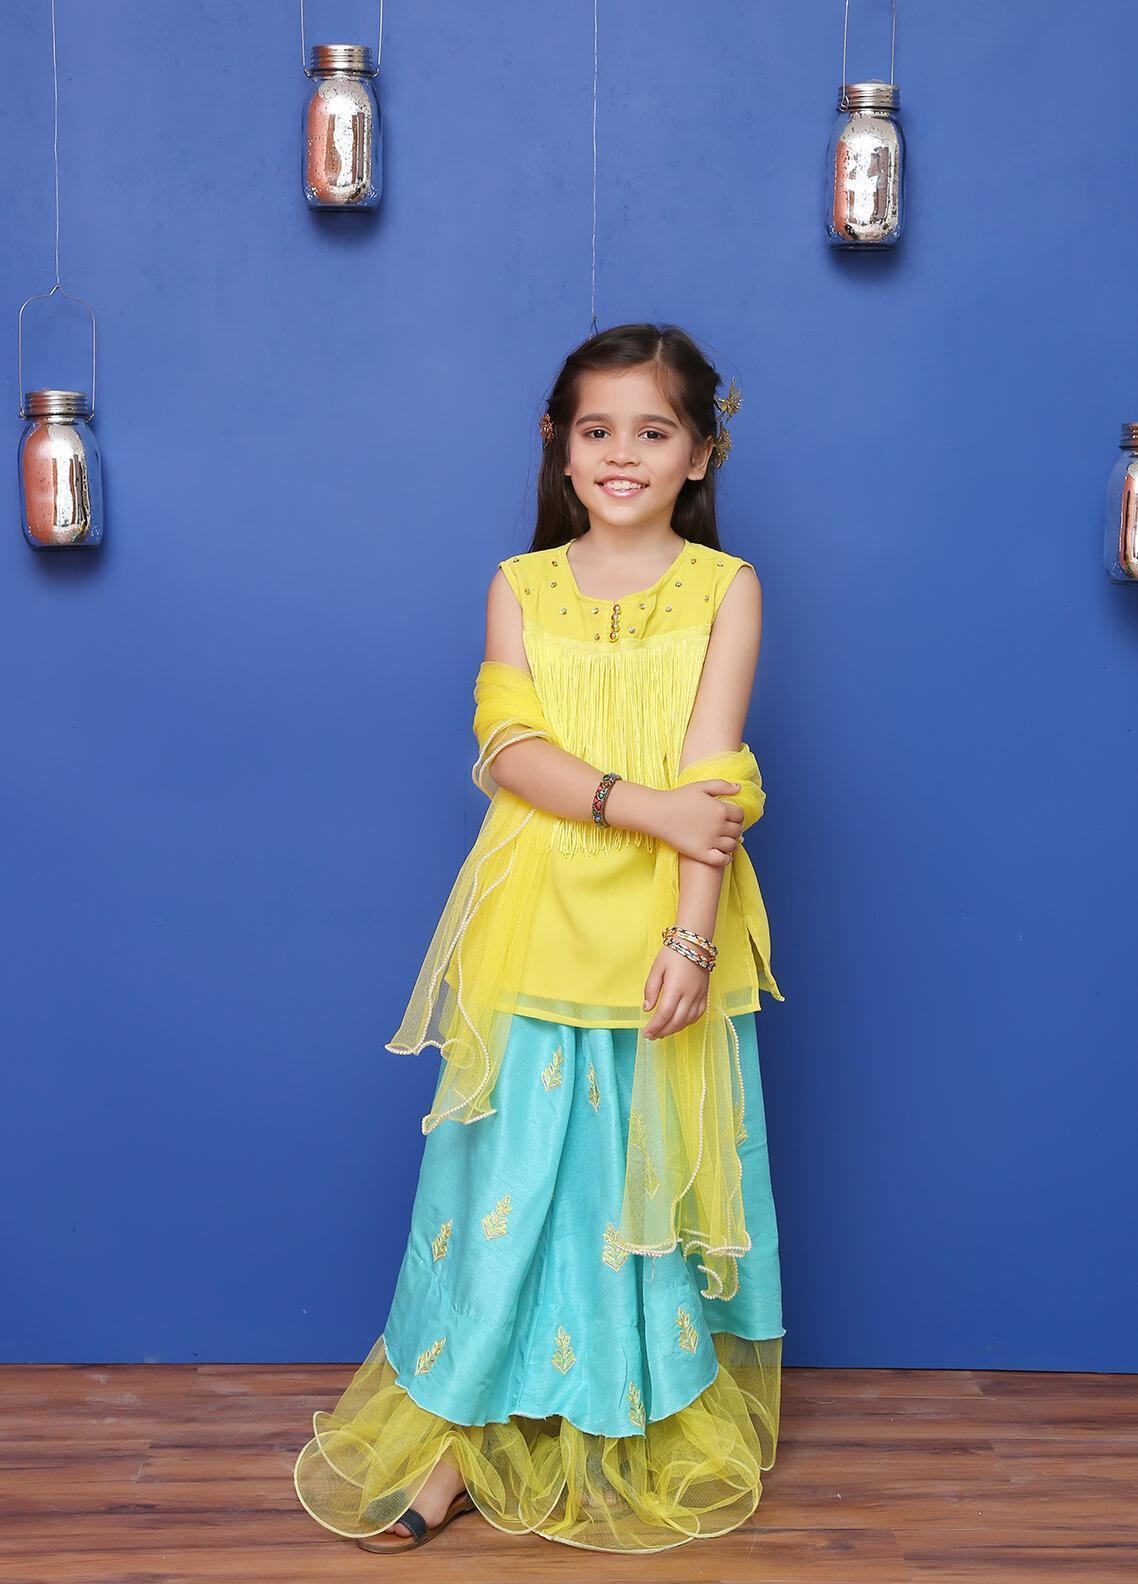 Ochre Chiffon Formal Girls 3 Piece Suit - OFW 185 Yellow